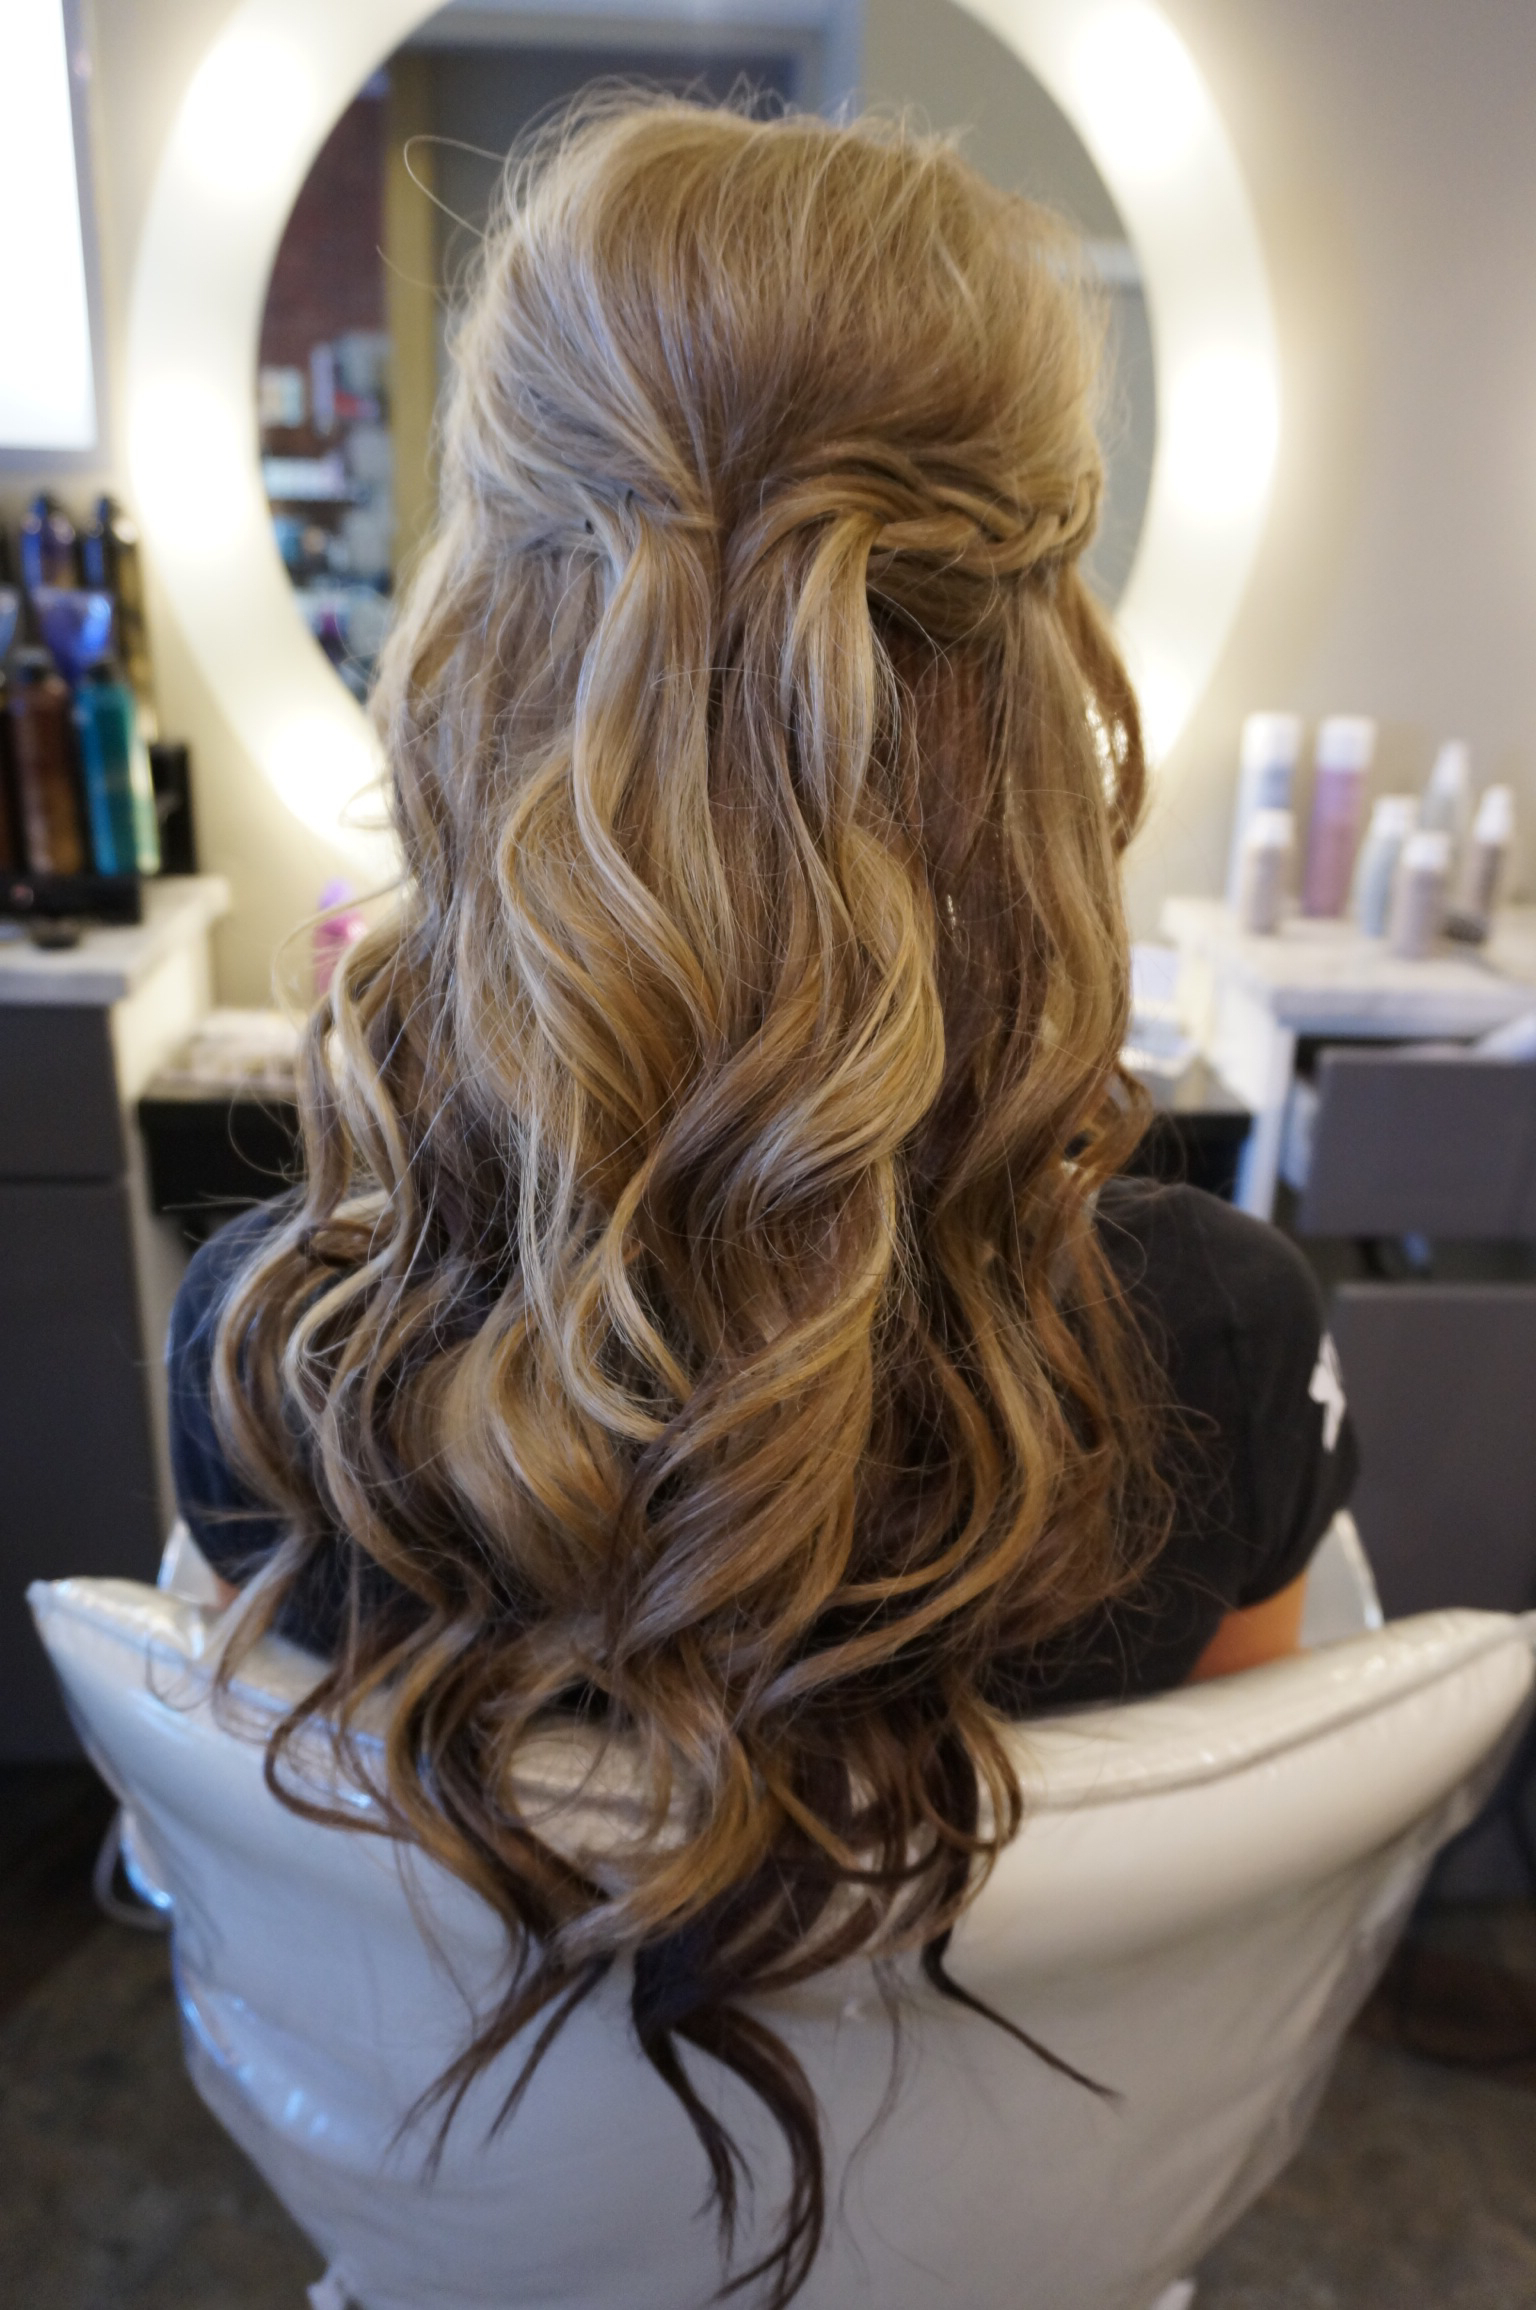 Loose Curly Updo Wedding Hairstyles (View 6 of 20)